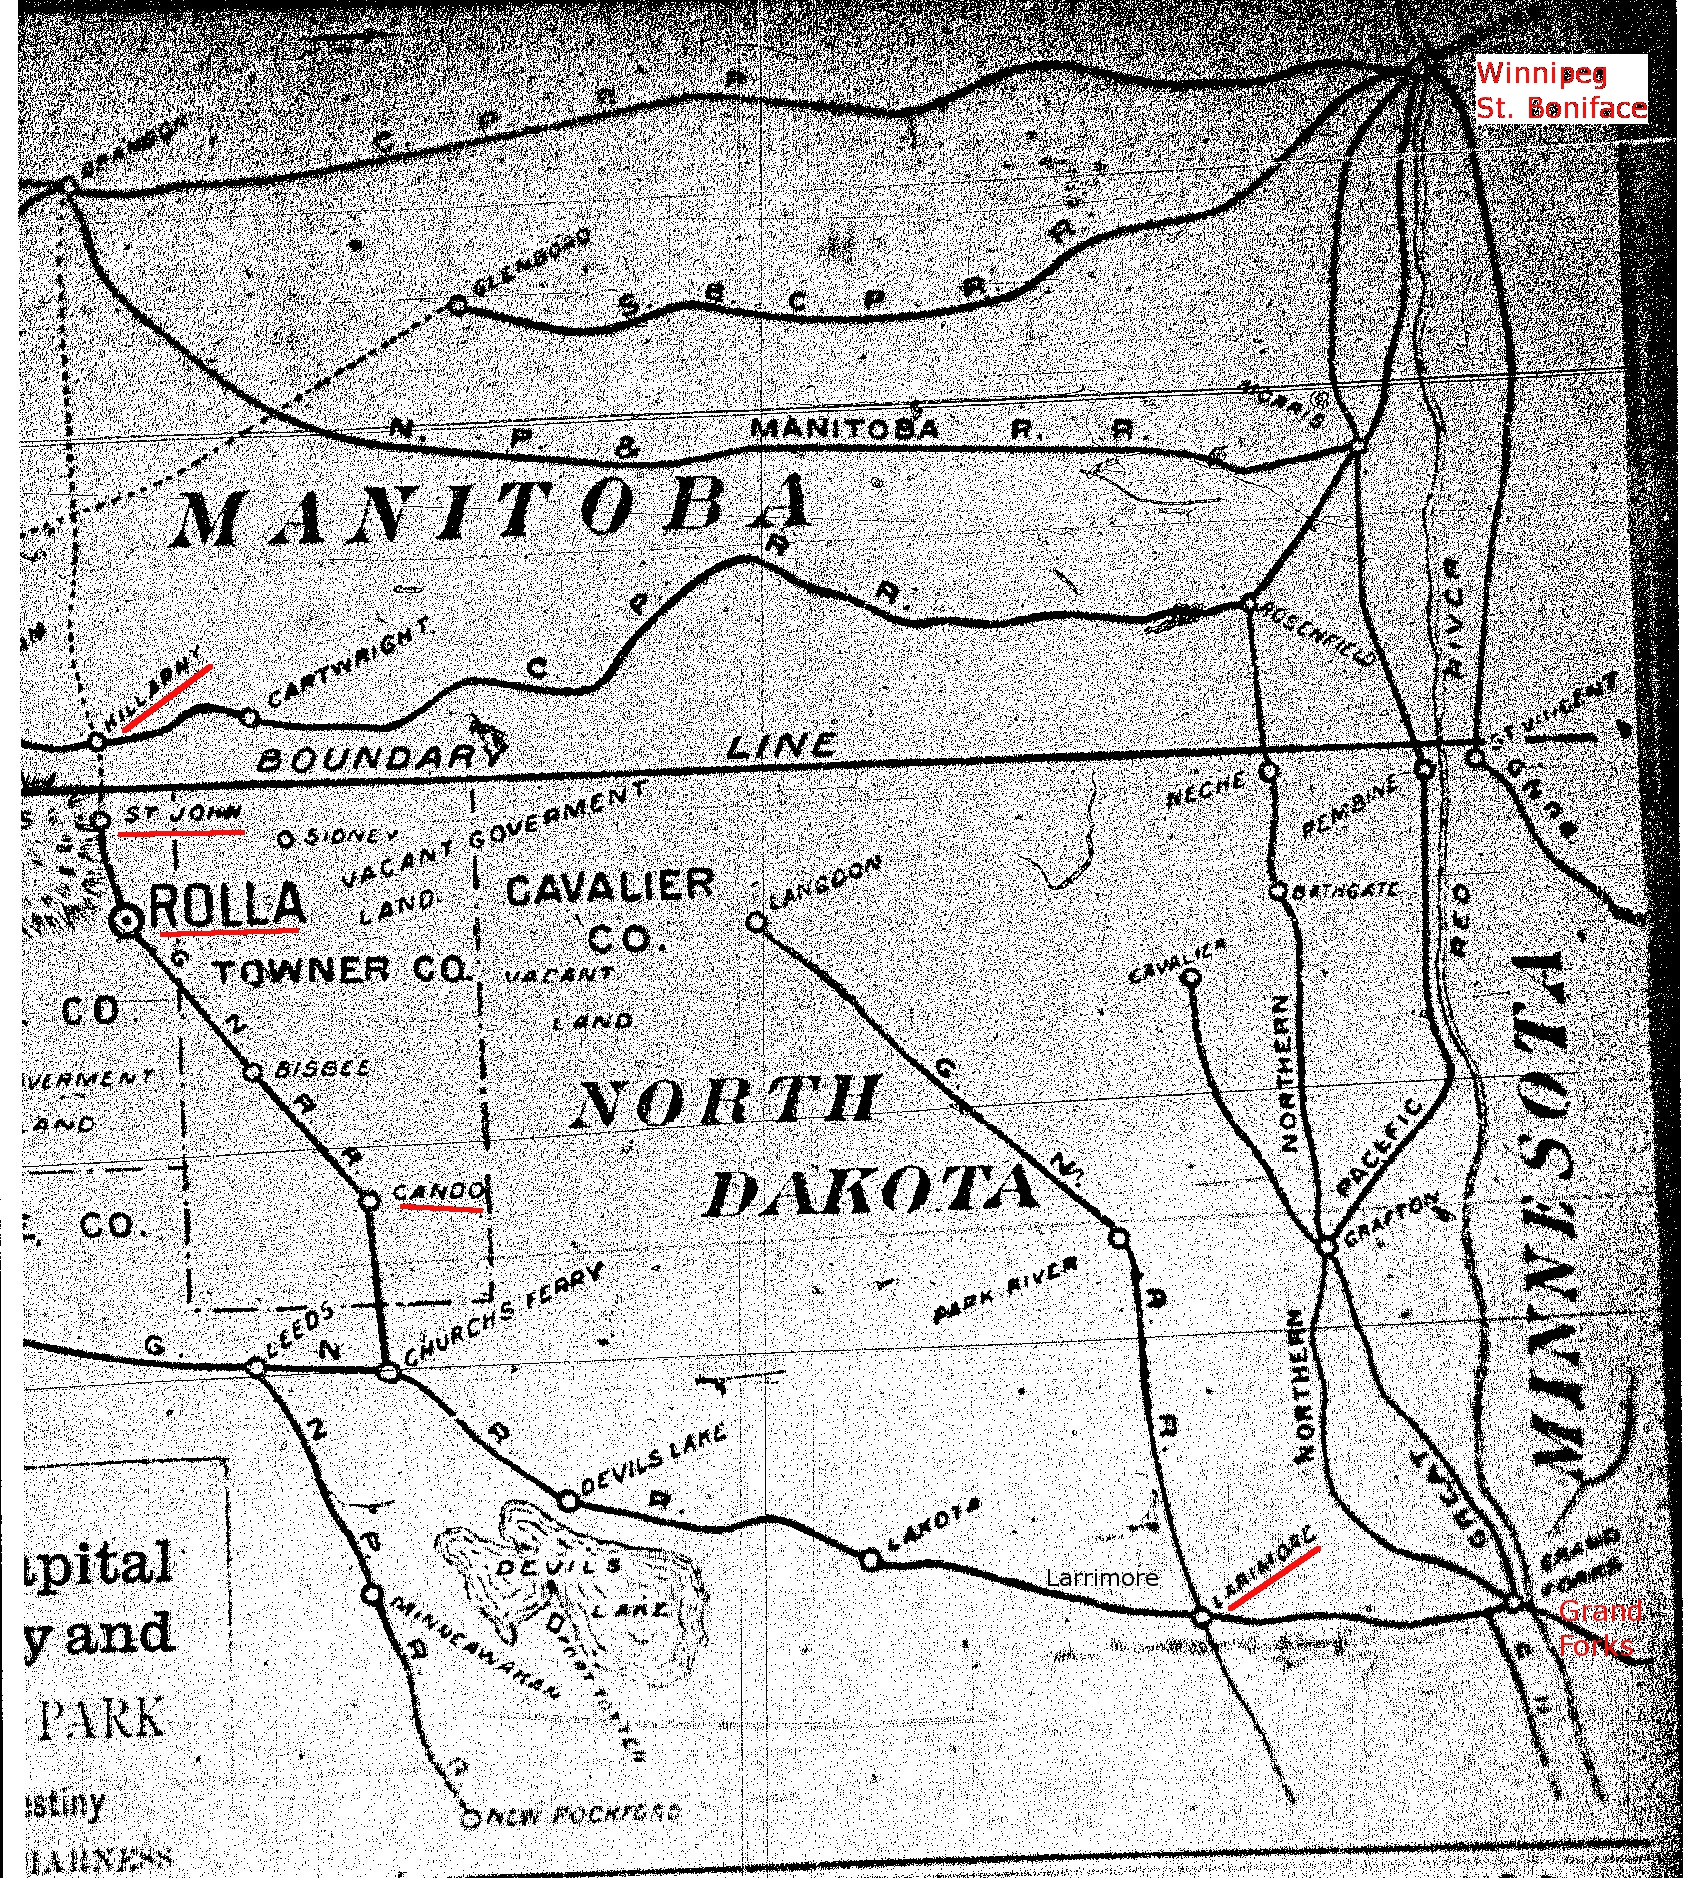 1892 Map of Portion of North Dakota